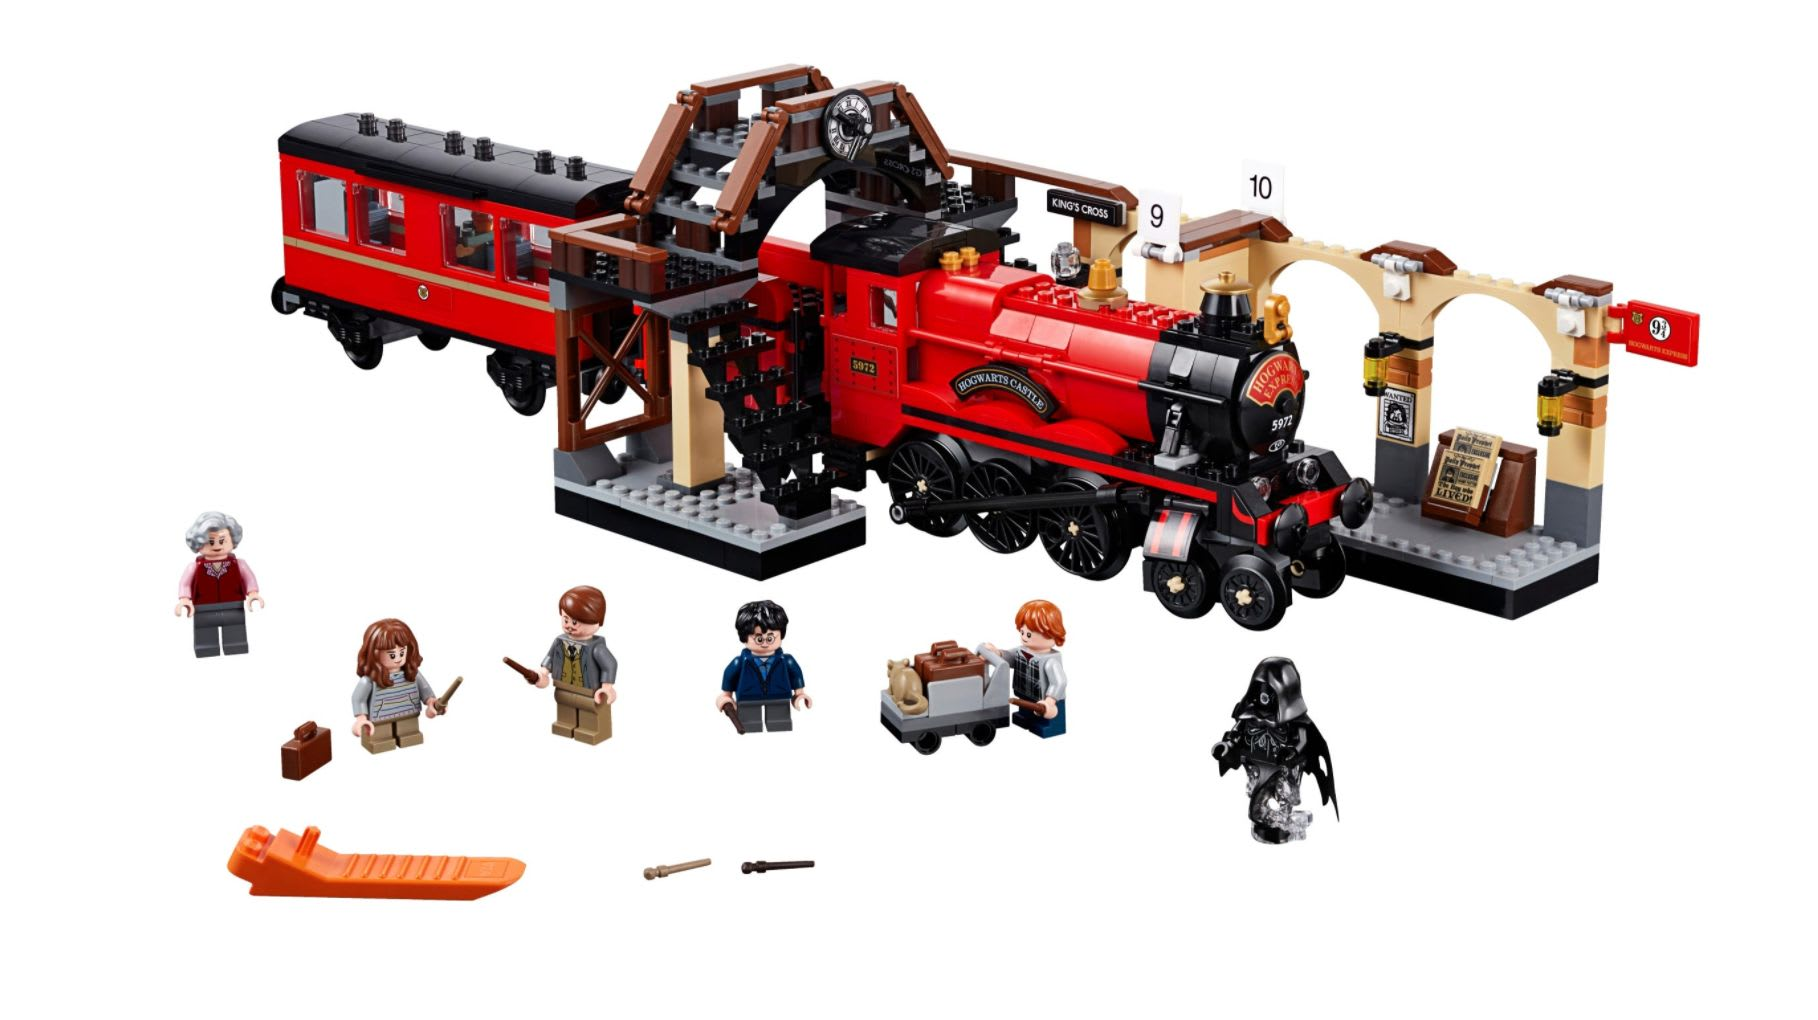 Discover the LEGO Harry Potter Hogwarts Express set available at LEGO.